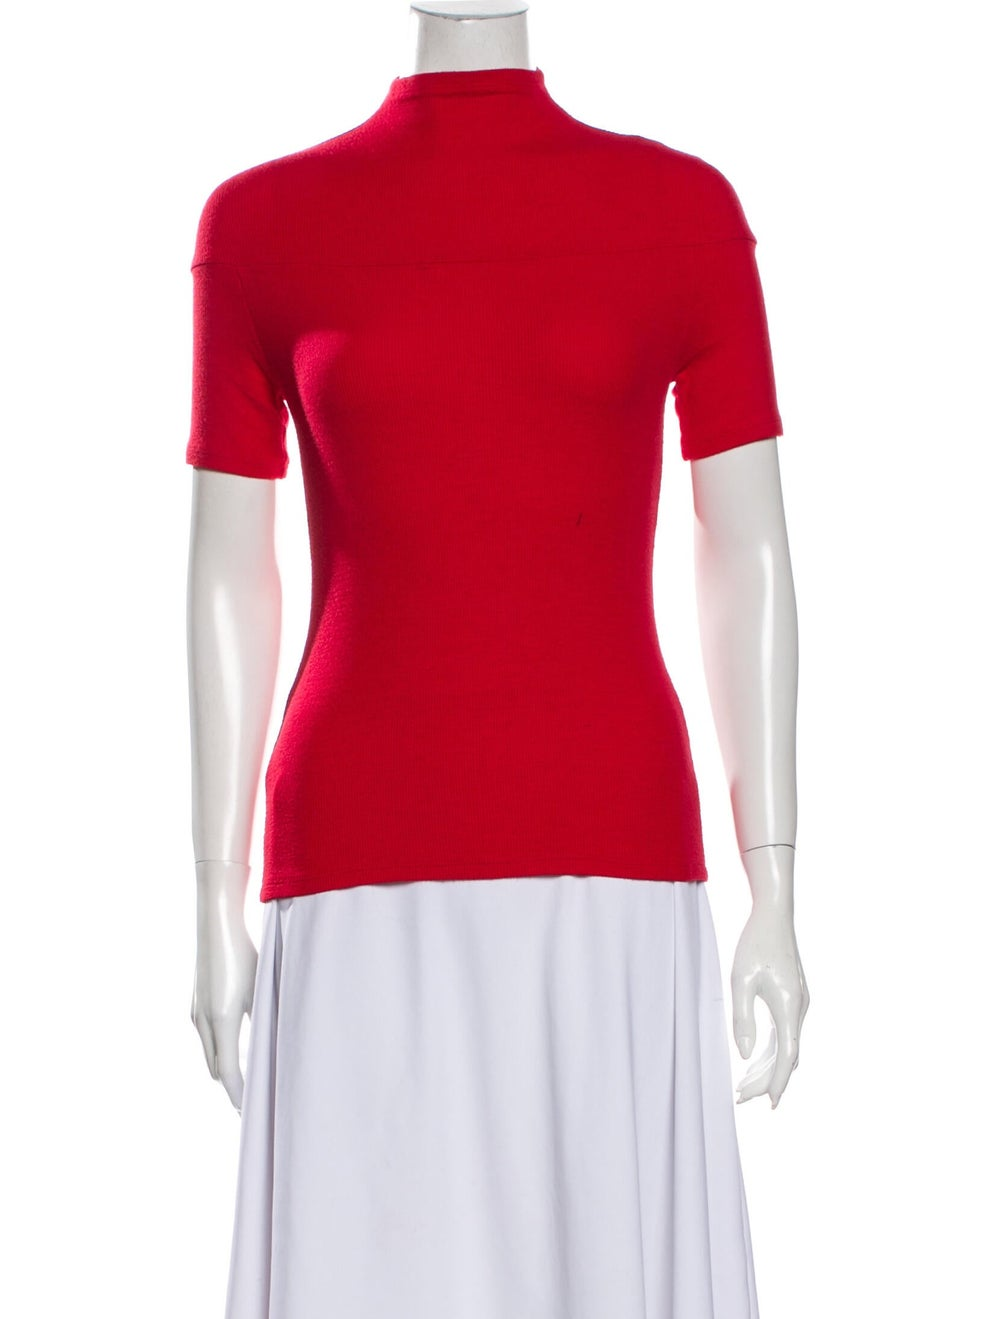 Beaufille Turtleneck Sweater Red - image 1